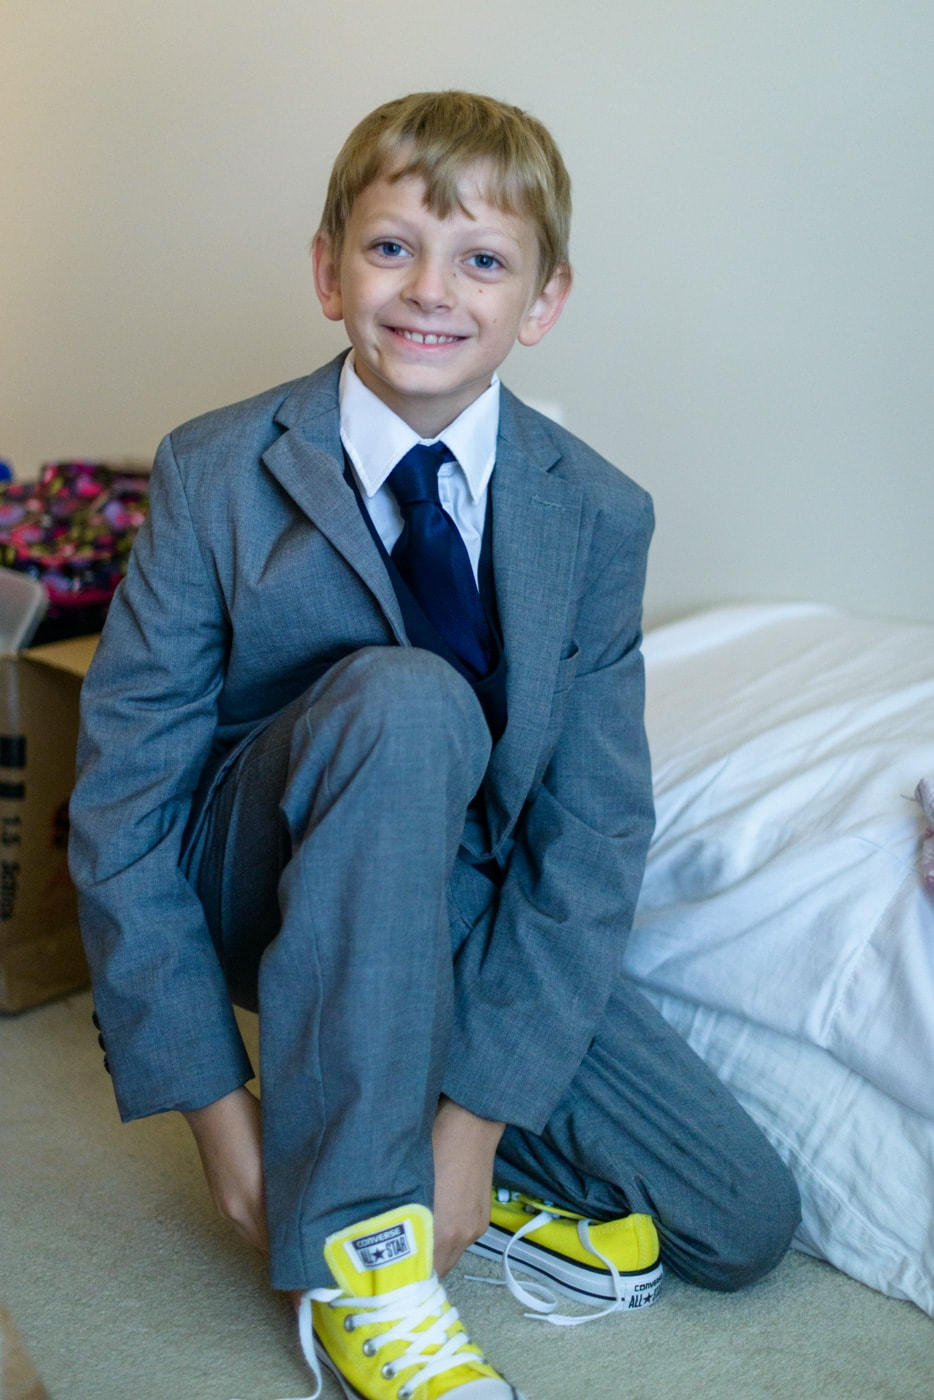 A young ring bearer puts on yellow sneakers with his suit before the wedding at a home in fairfax, virginia